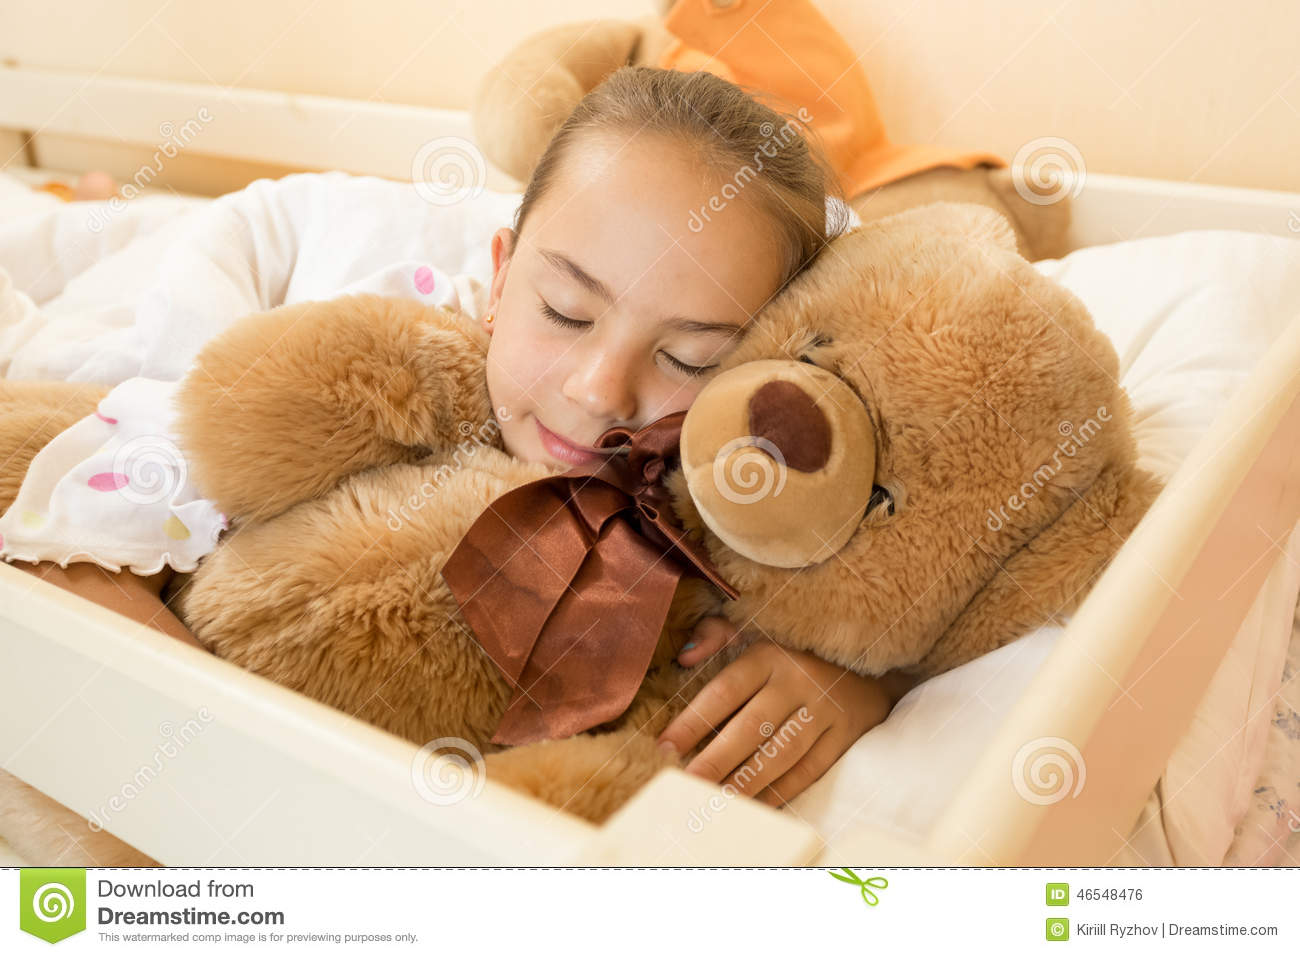 Little Girl Sleeping On Big Teddy Bear At Bed Stock Photo ...